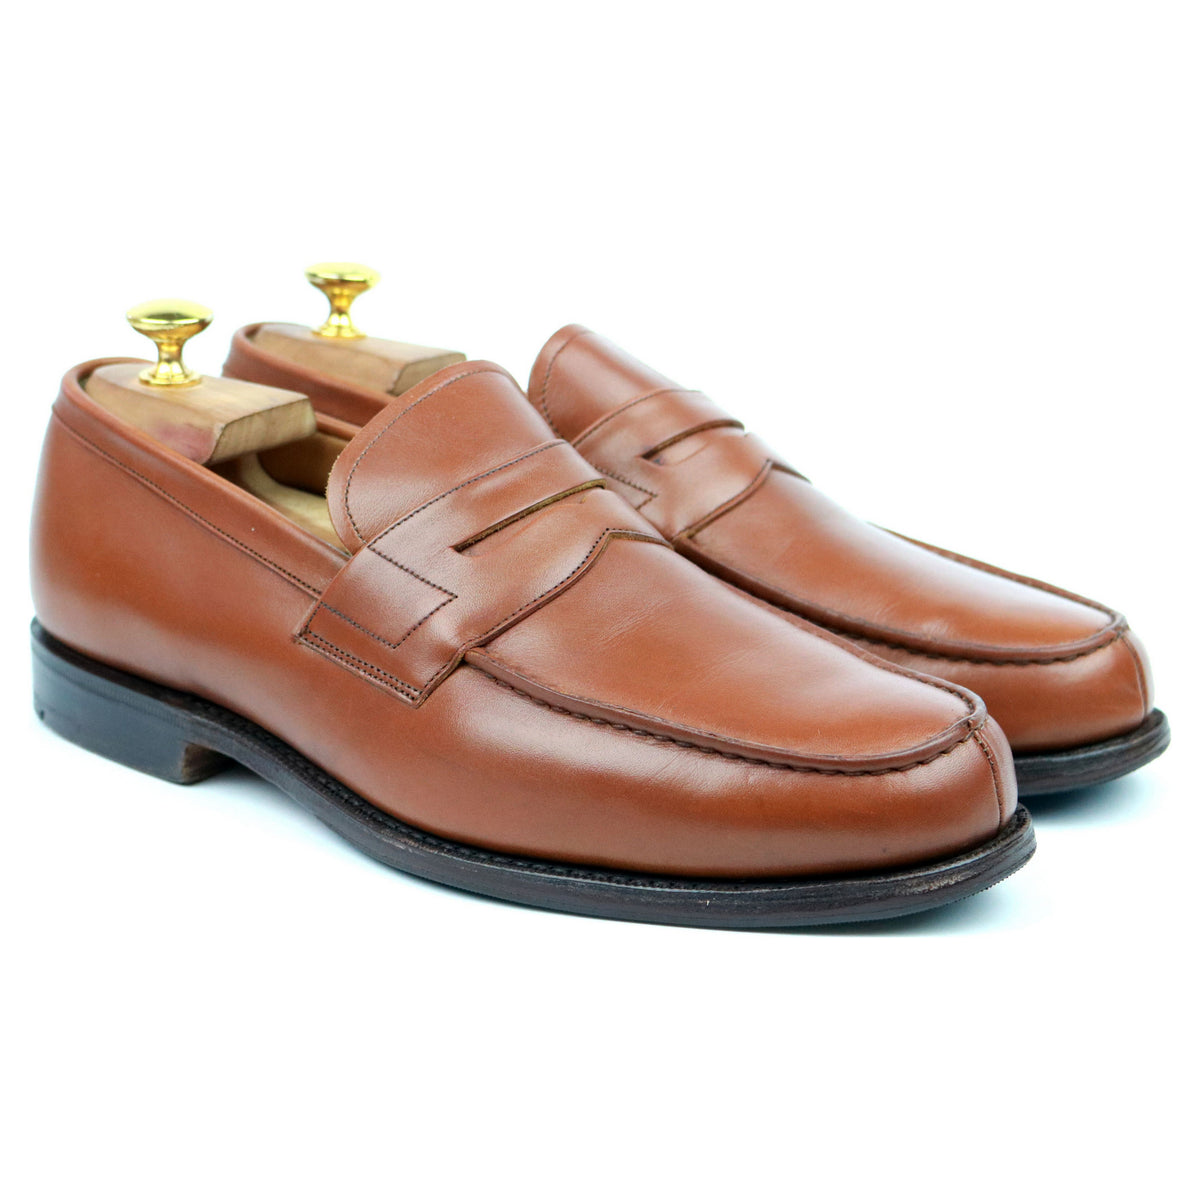 Church's Tan Brown Leather Loafers UK 8 F